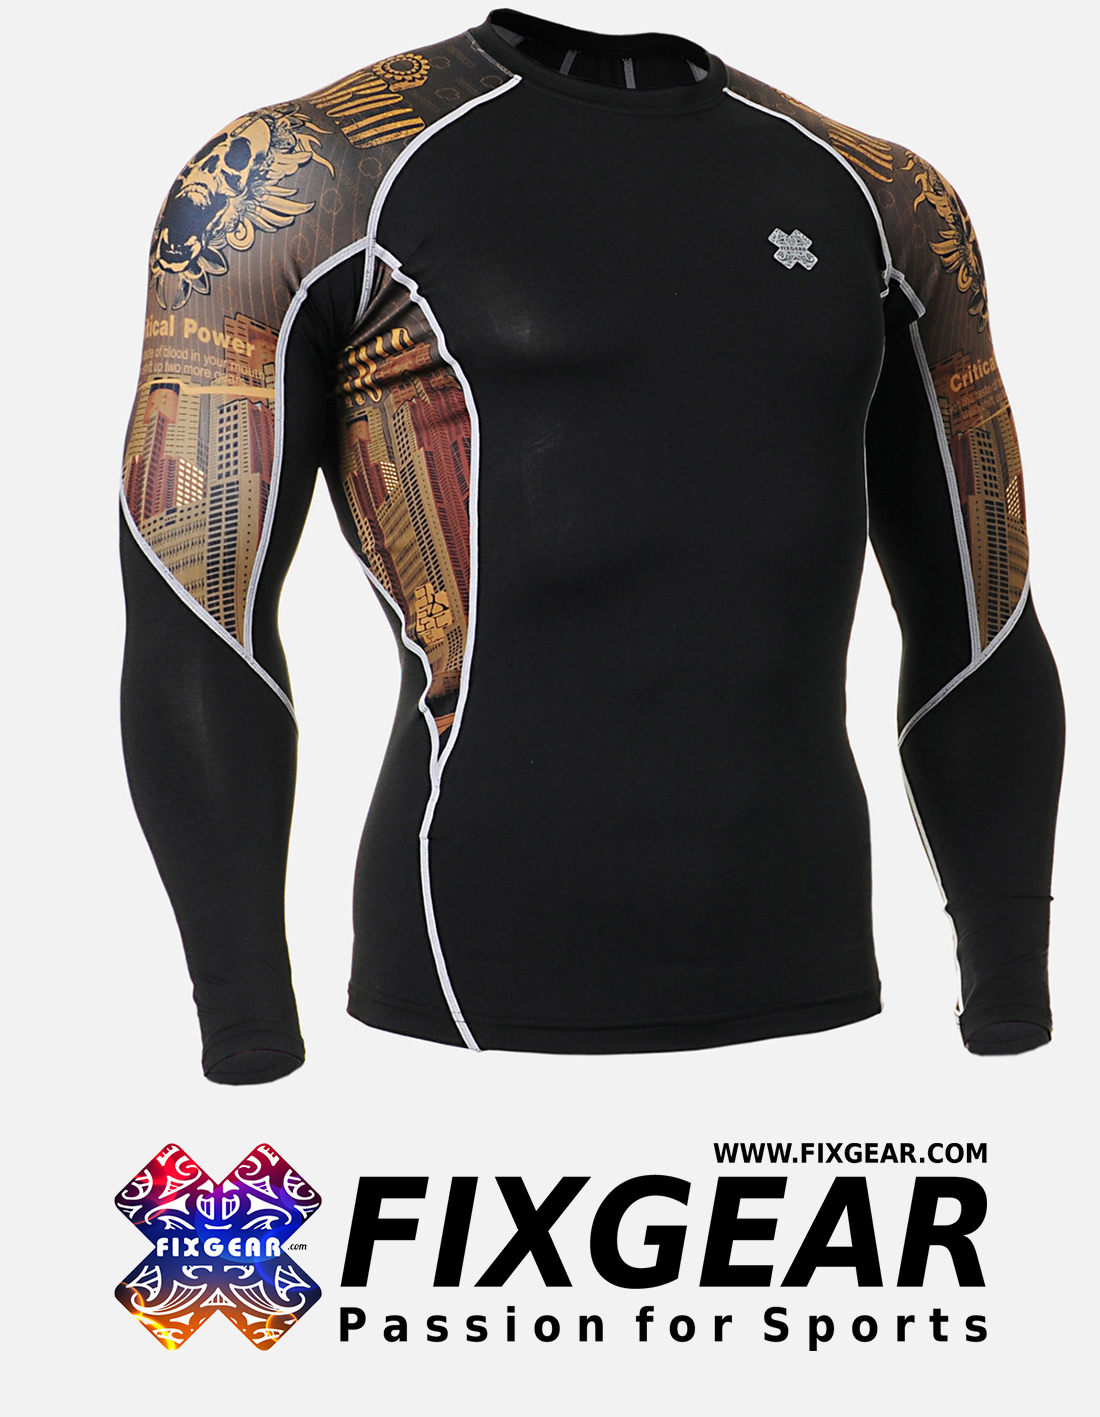 FIXGEAR C2L-B27 Compression Base Layer Shirt